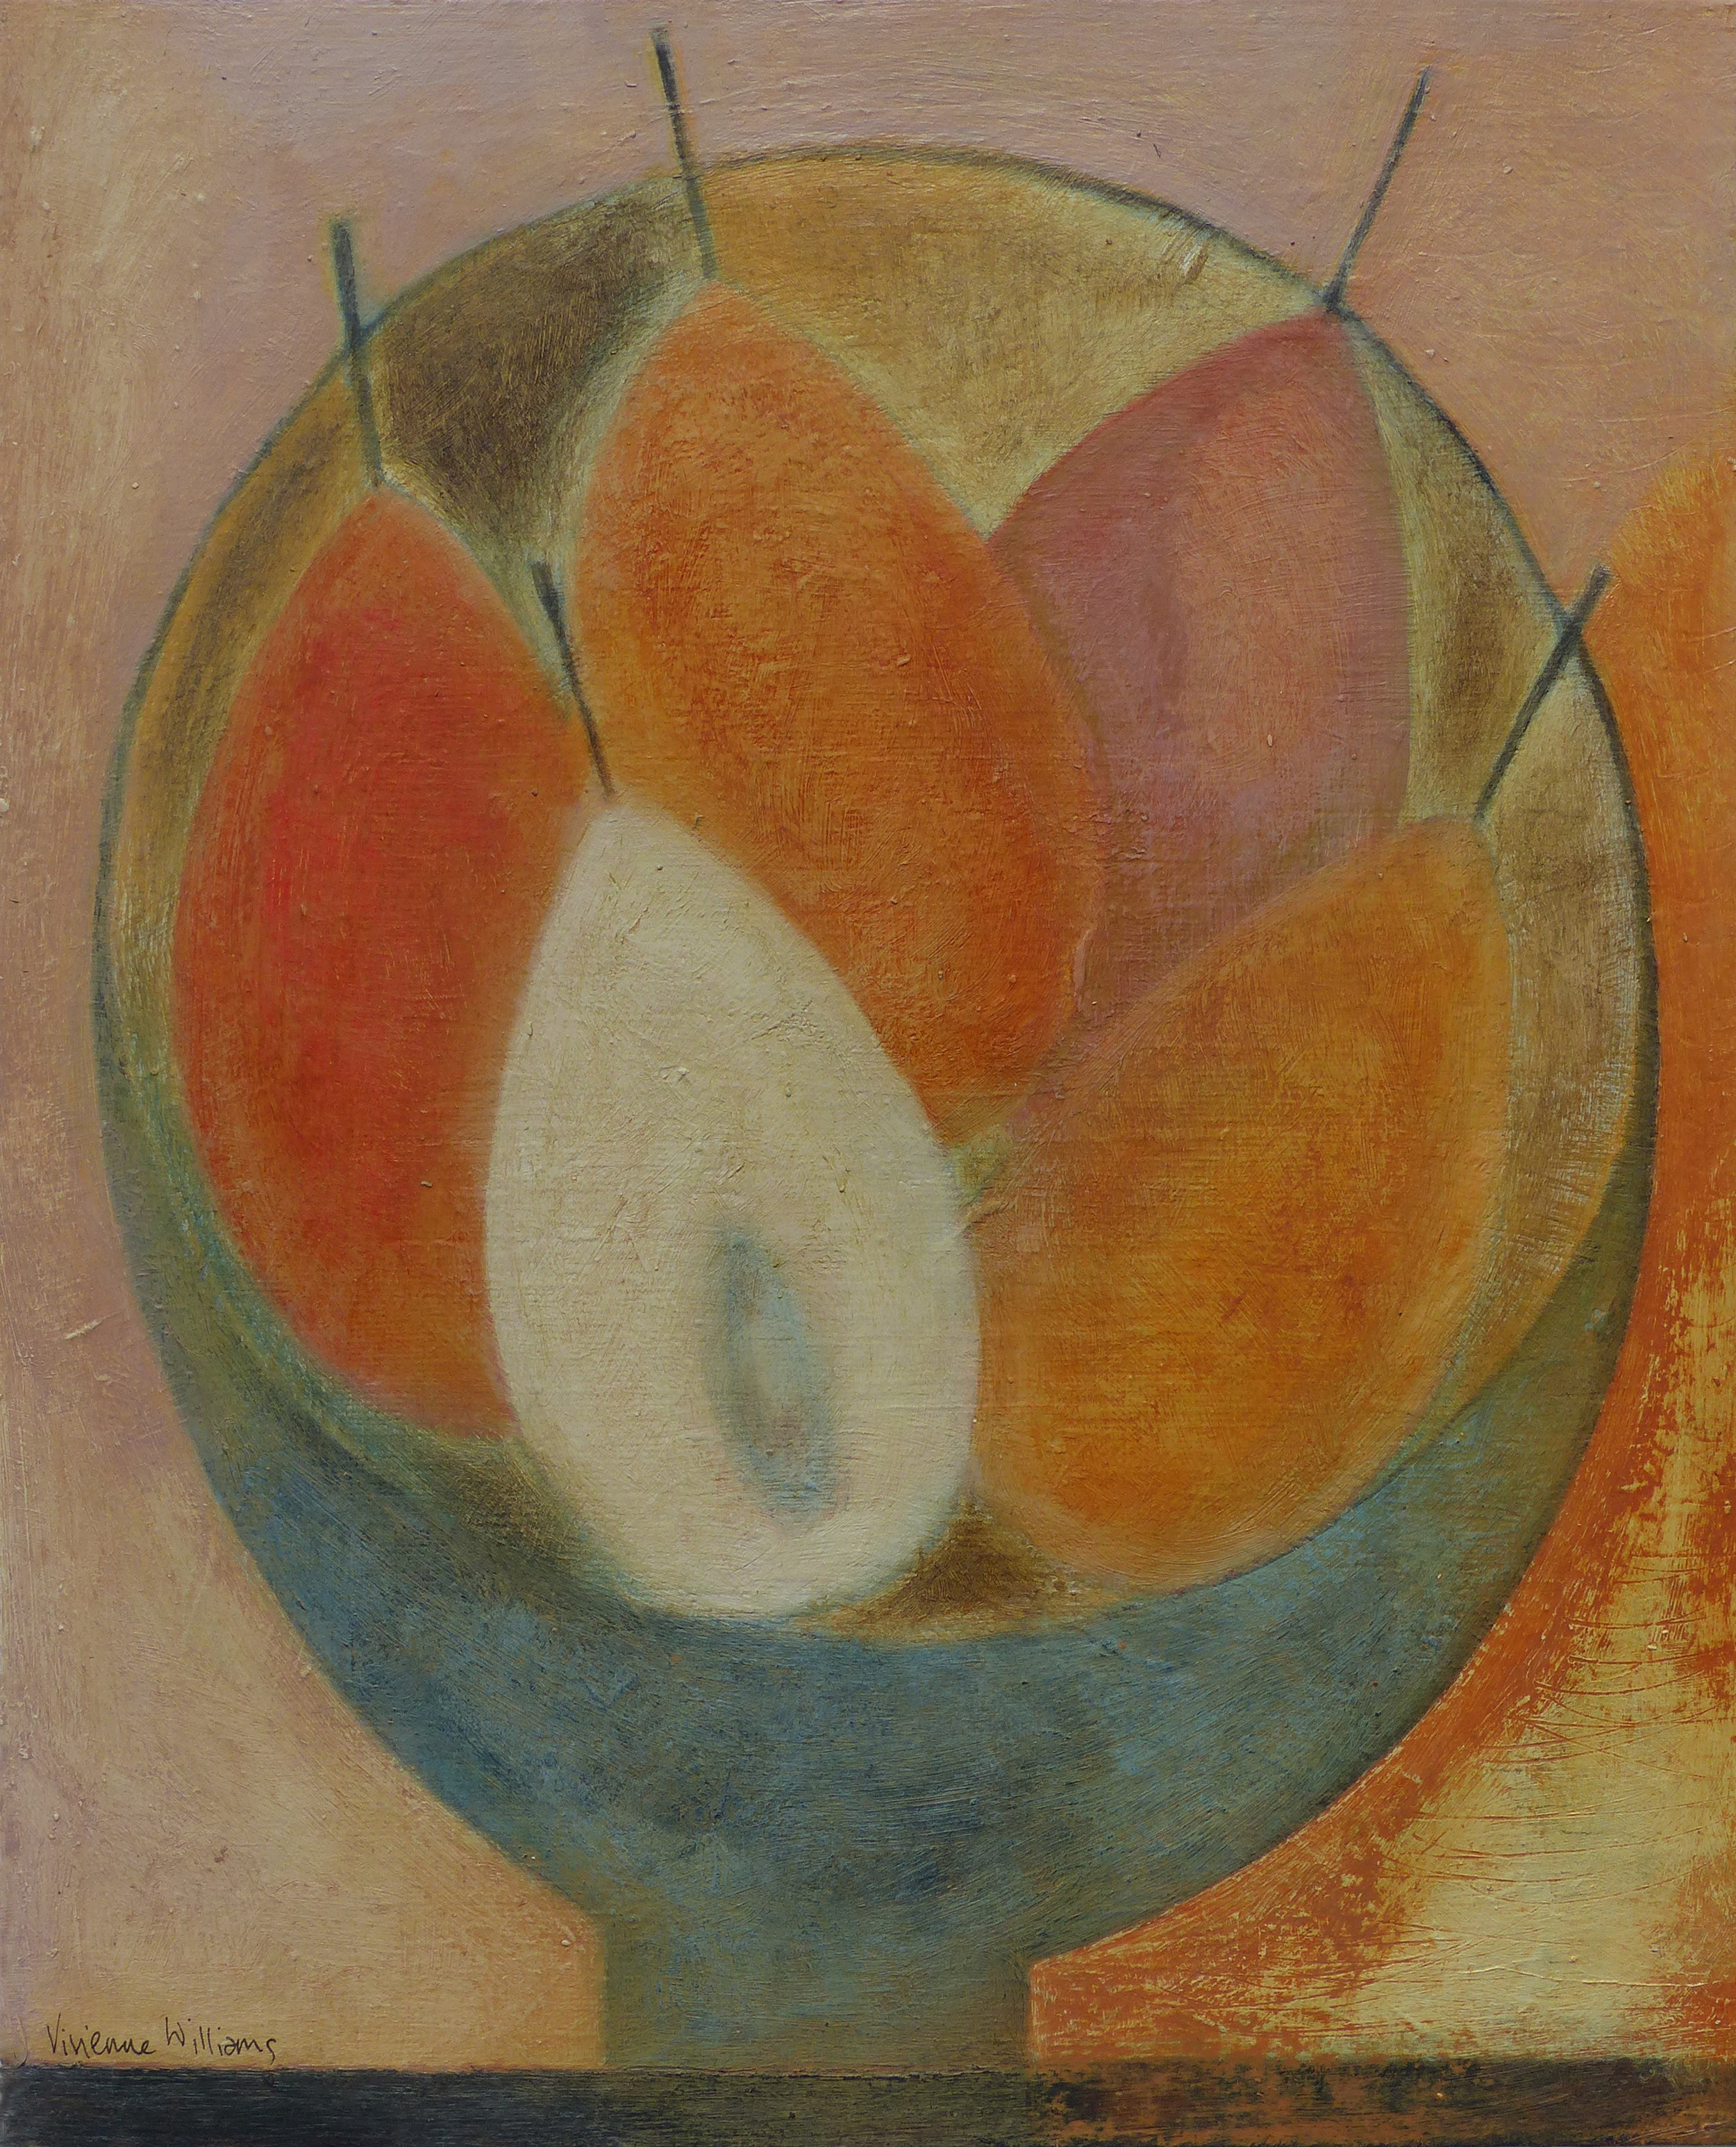 Small Pear Bowl, 29cm x 24.5cm, 2017